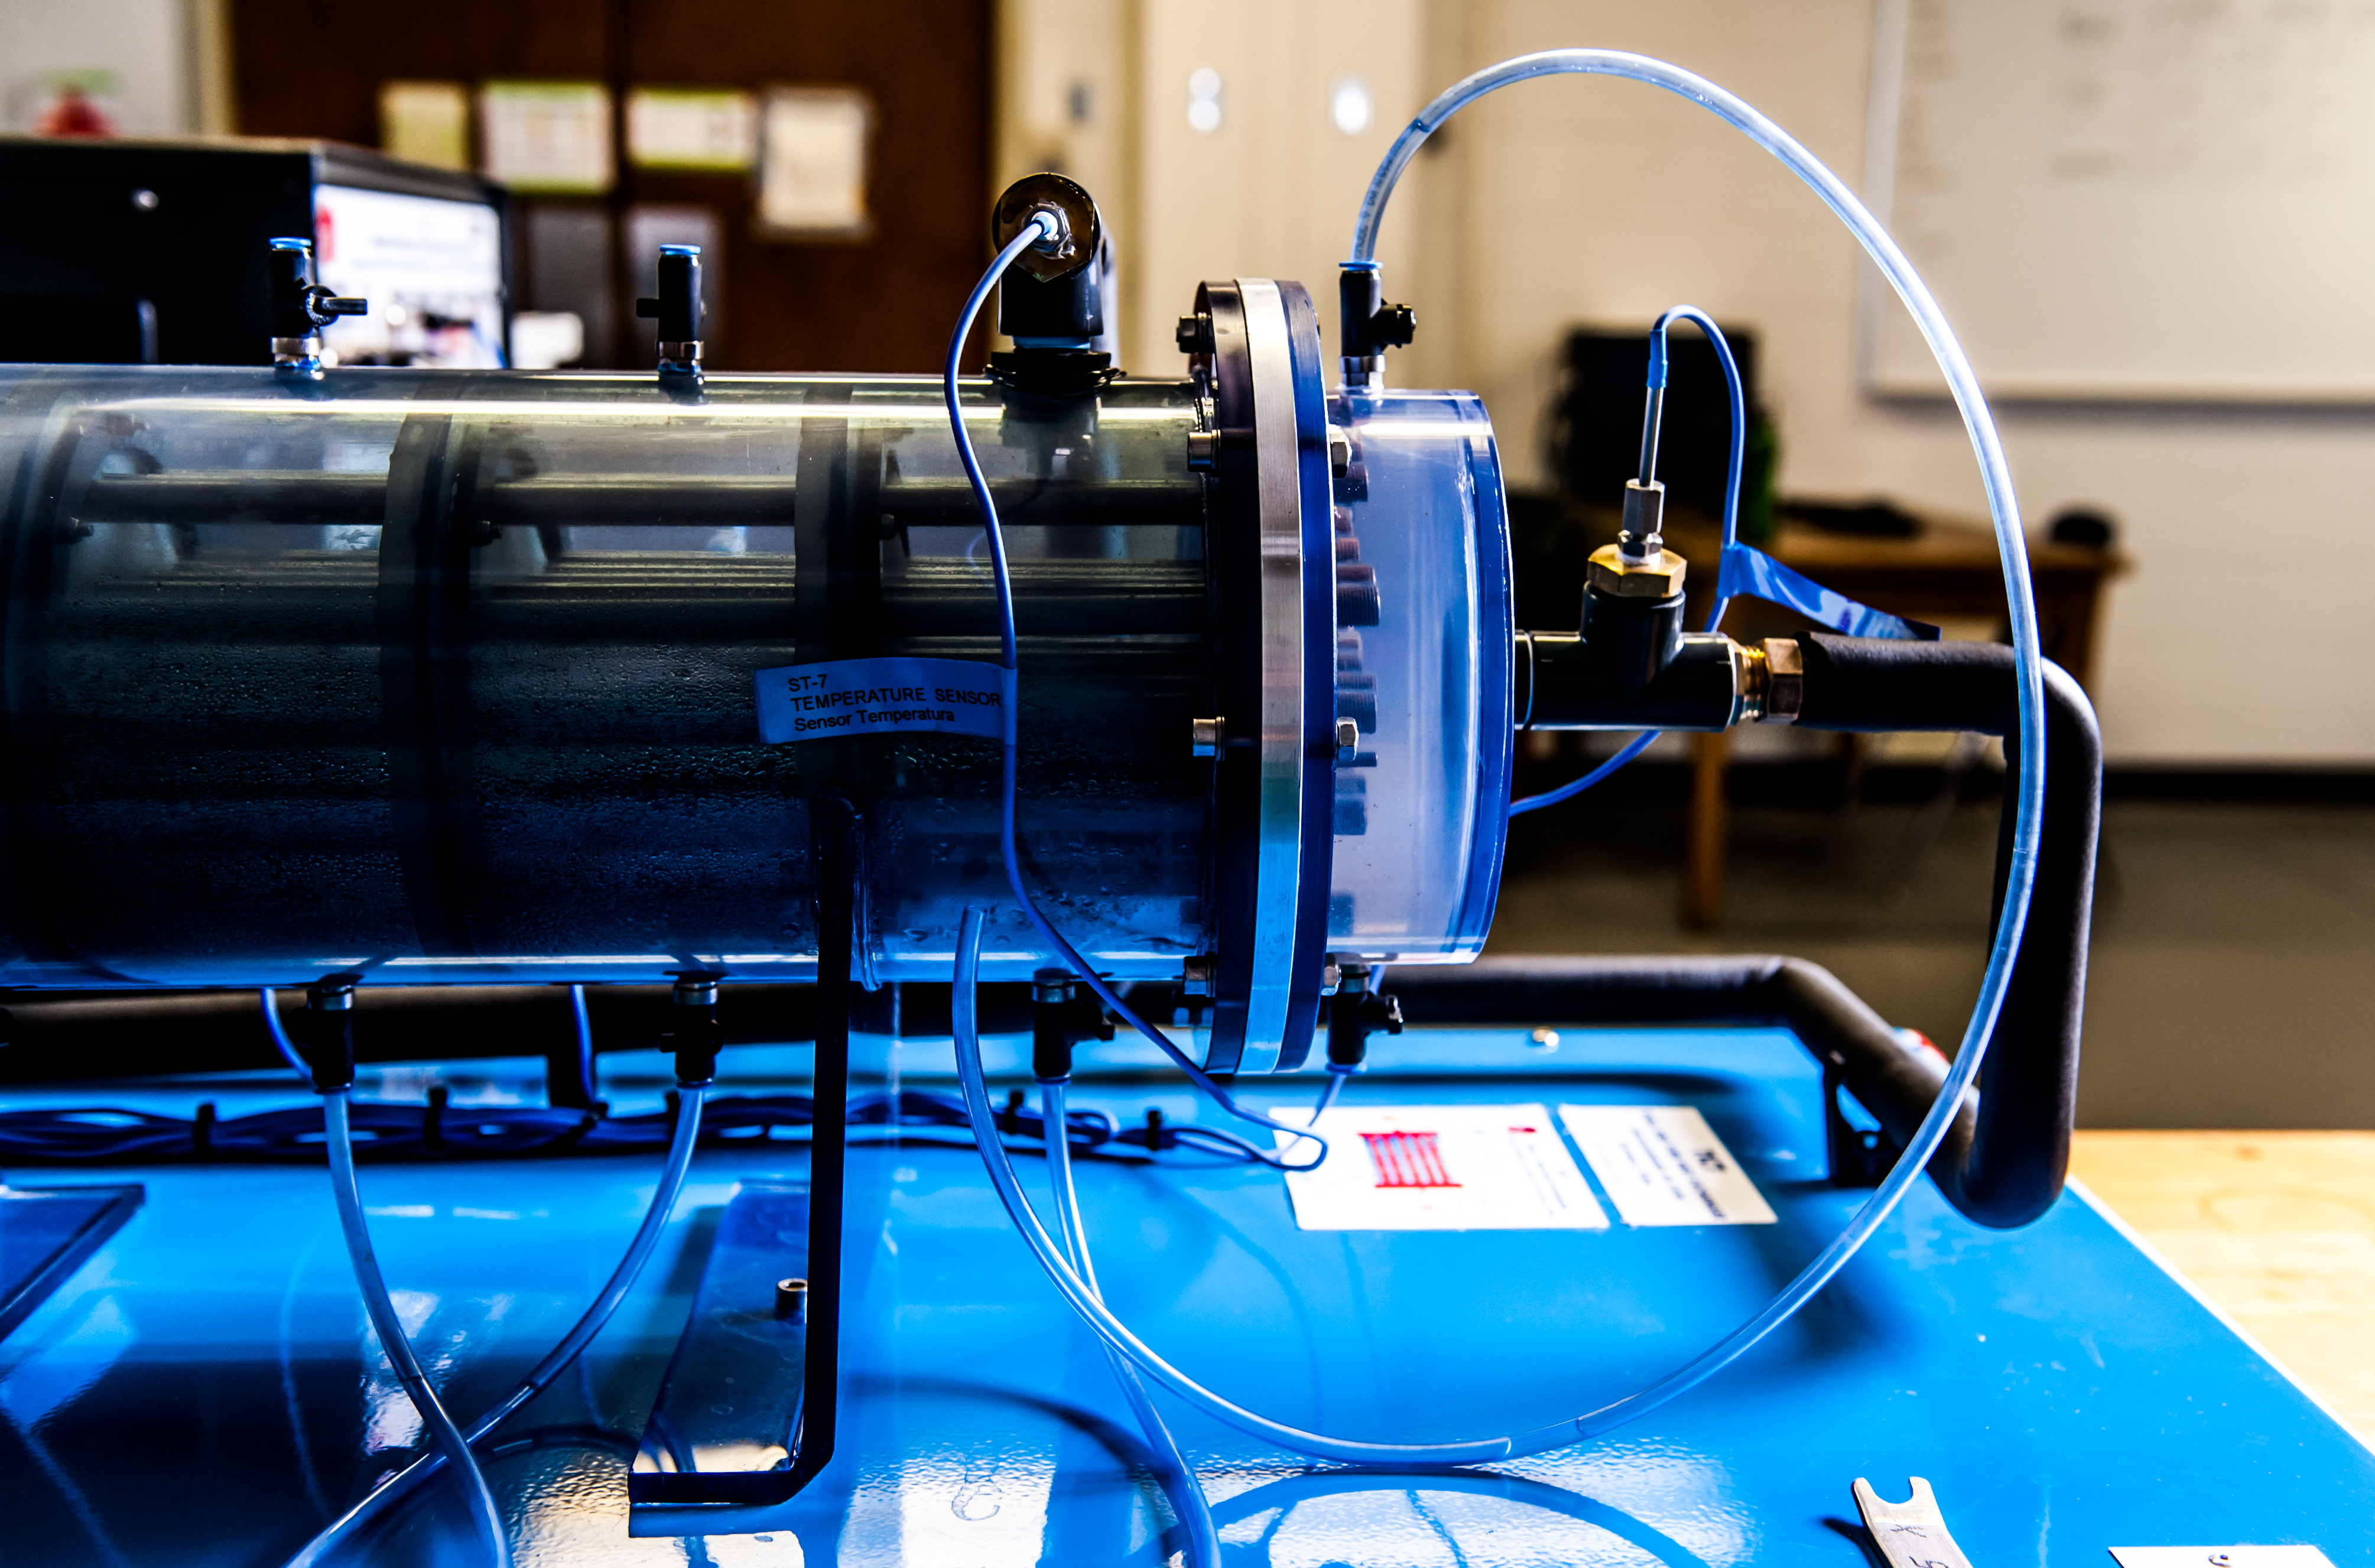 PhD Engineering - Fluid and Thermal Systems Emphasis